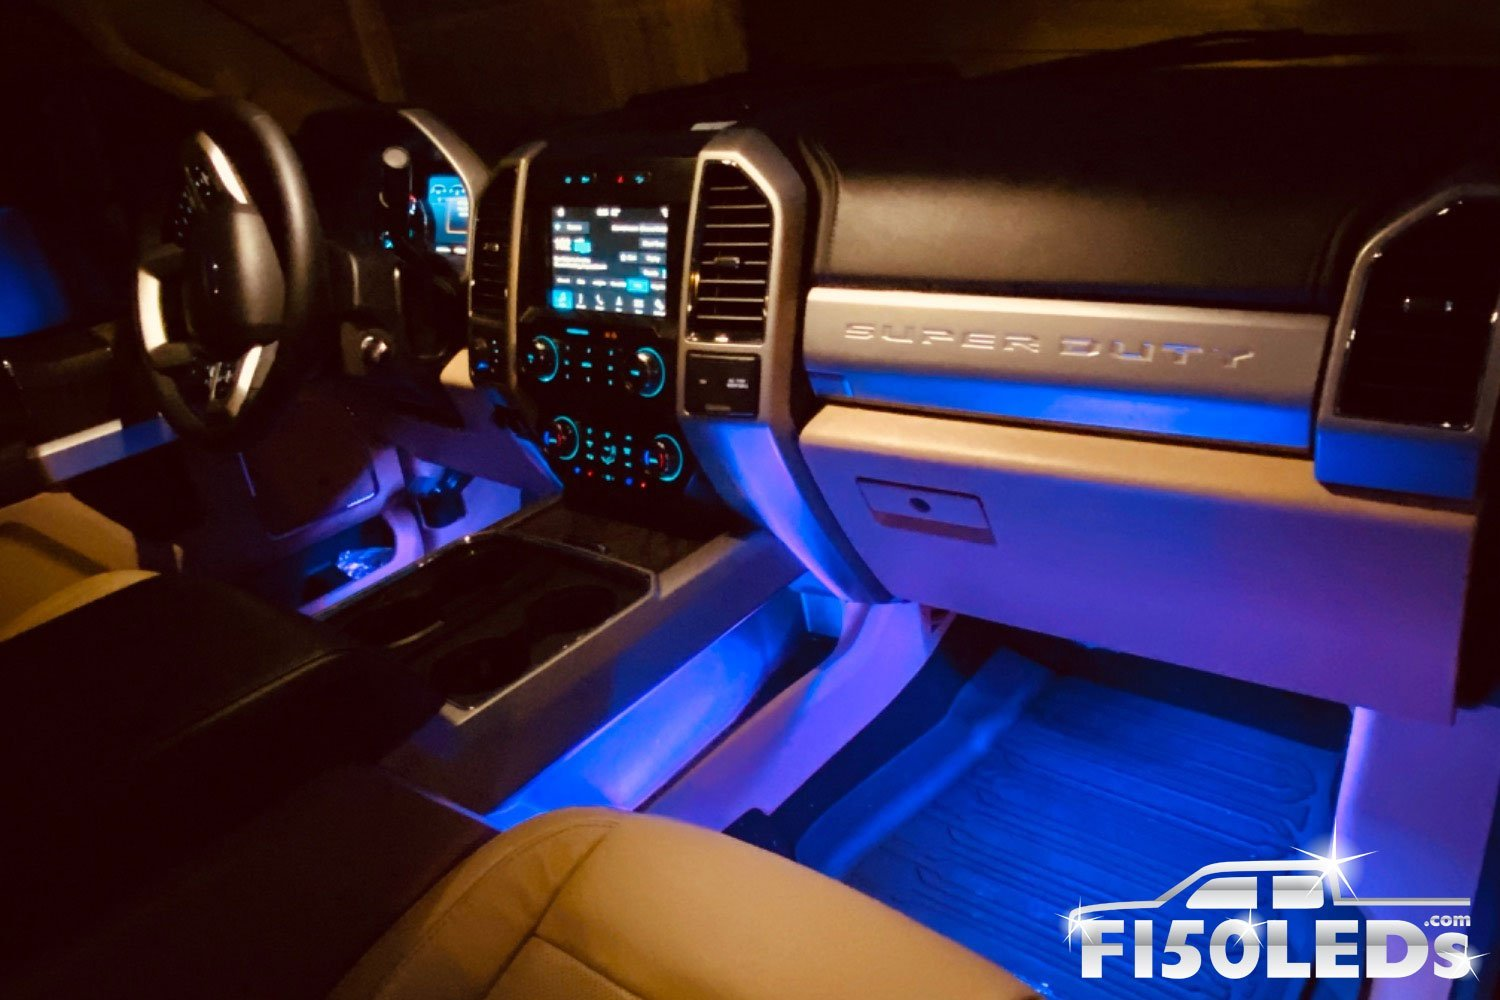 2017 - 2020 F250 Super Duty AMBIENT LED LIGHTING KIT-2017 - 2020 F250 Super Duty-F150LEDs.com